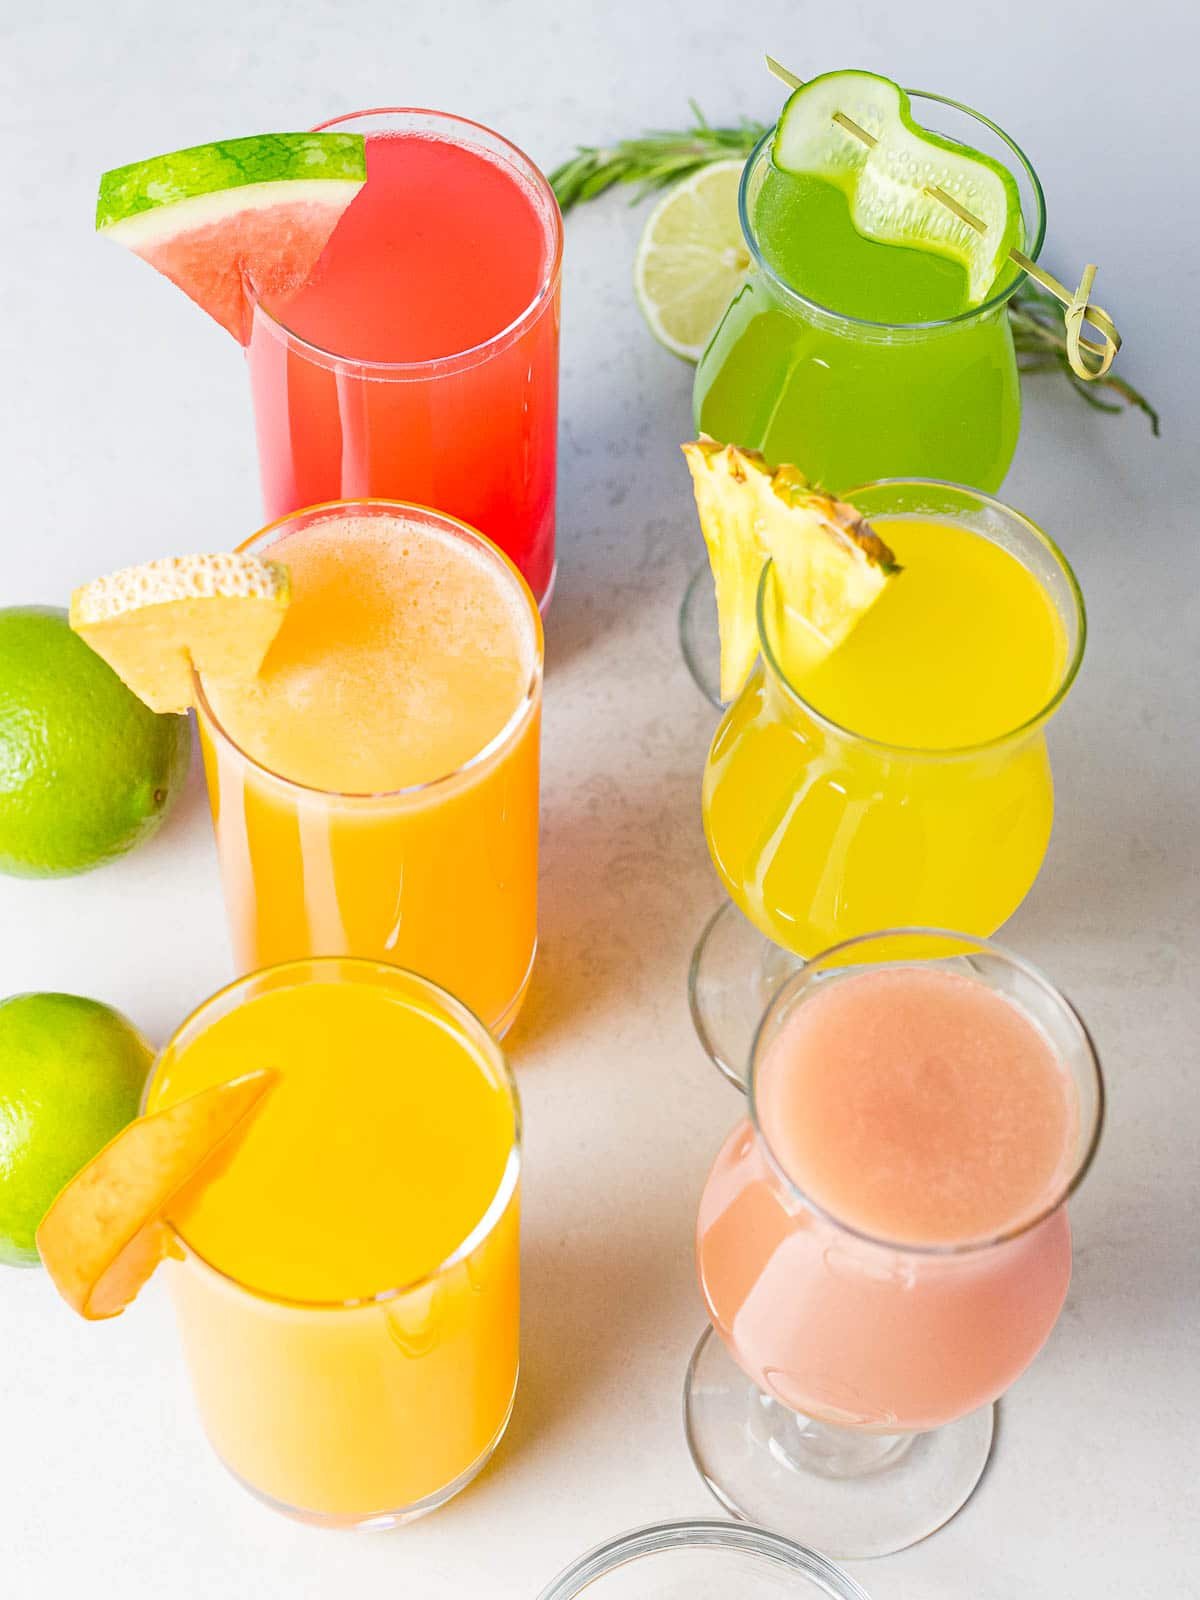 flavors of refreshing agua fresca fruit drinks in glasses with fruit garnishes